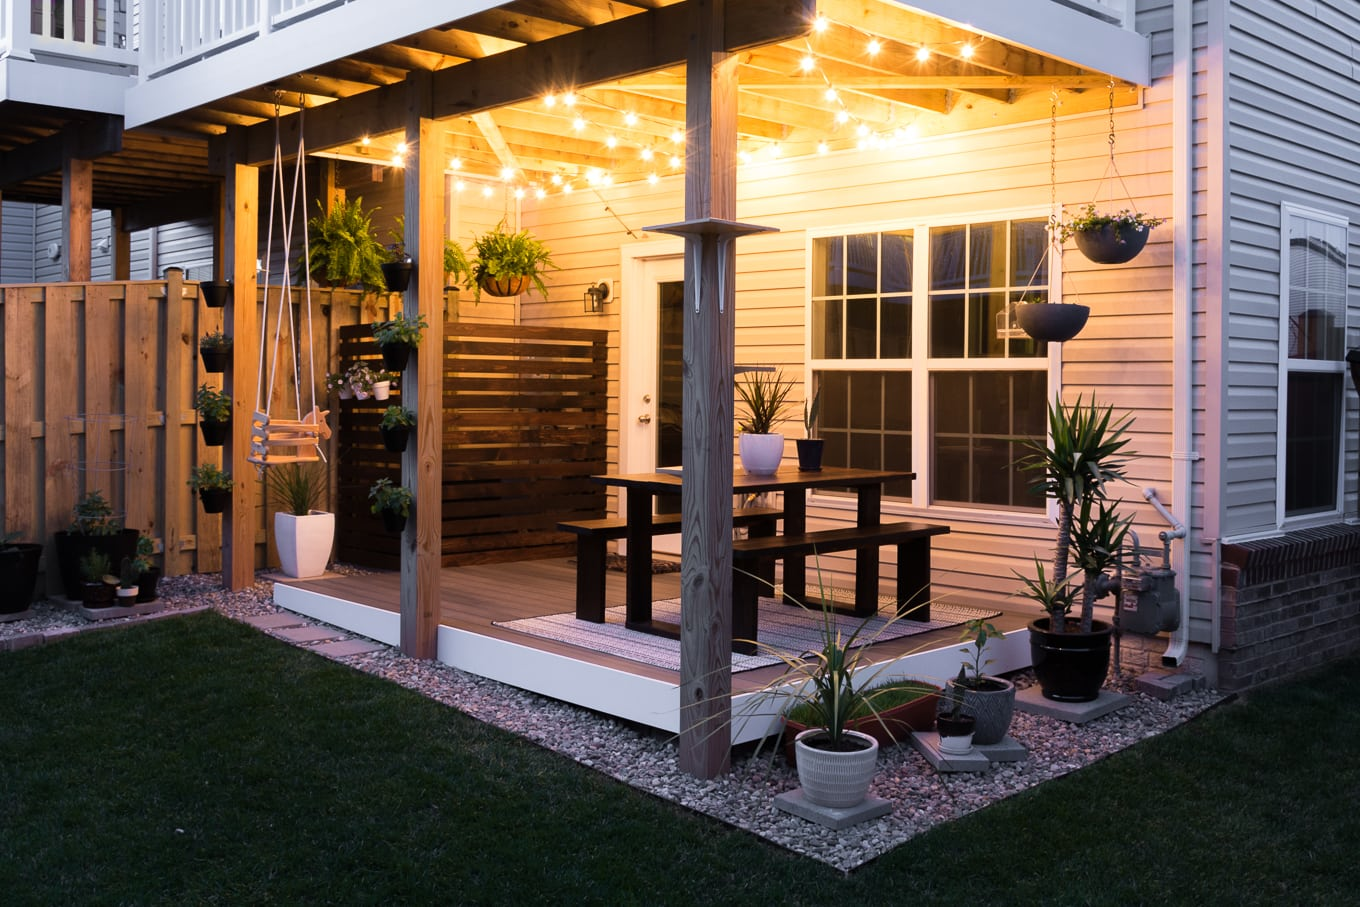 Modern design ideas for a small backyard // DIY rock landscaping around a gray Trex platform deck // Hanging herbs // DIY outdoor cat perches // DIY HVAC unit screen // small garden ideas // hanging ferns on a patio // hanging globe string lights